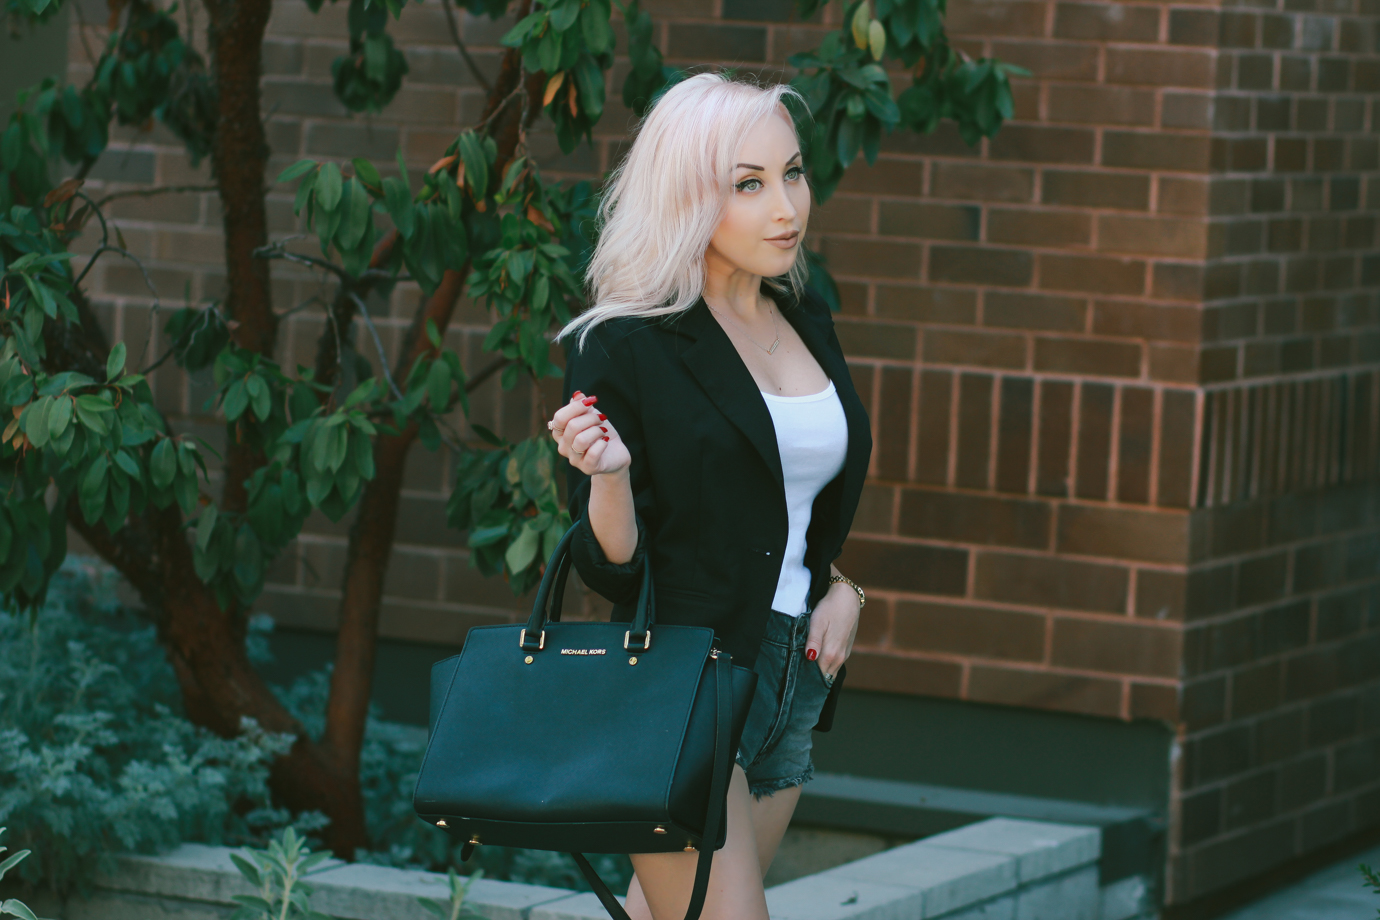 Blondie in the City | How To Style A Blazer | Street Style